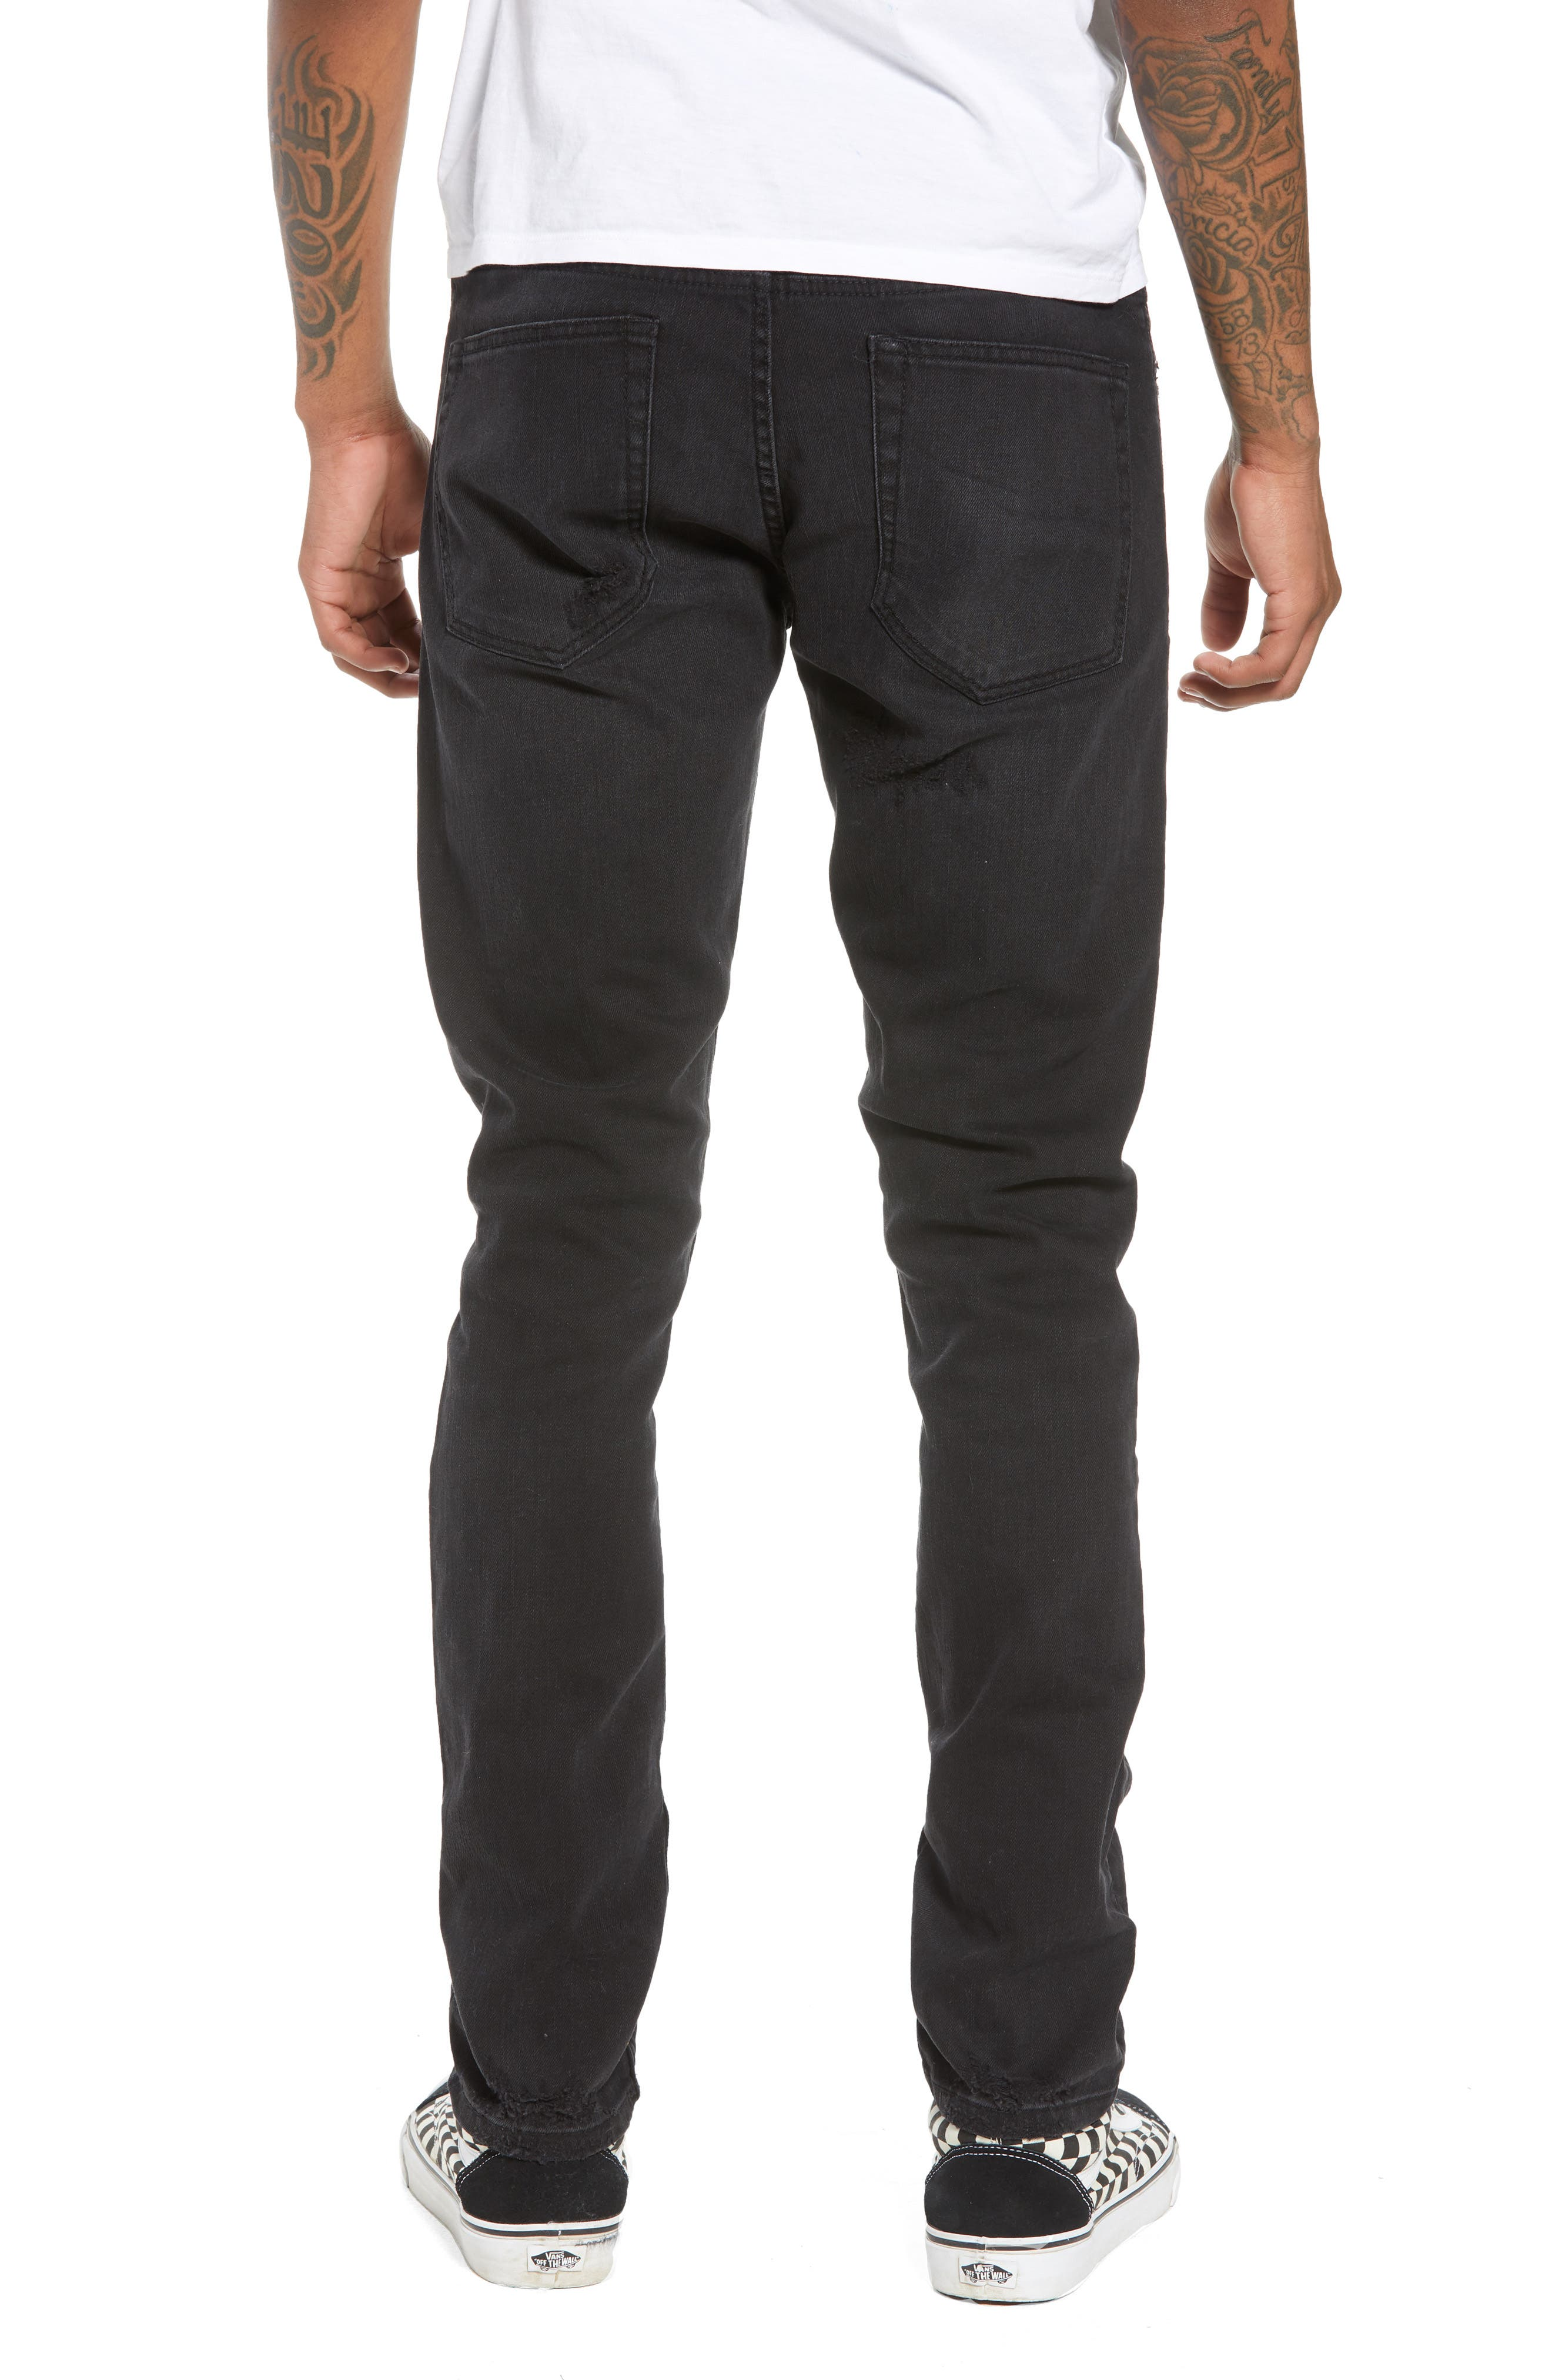 Wooster Slim Fit Jeans,                             Alternate thumbnail 2, color,                             WILLING BOUNDARY